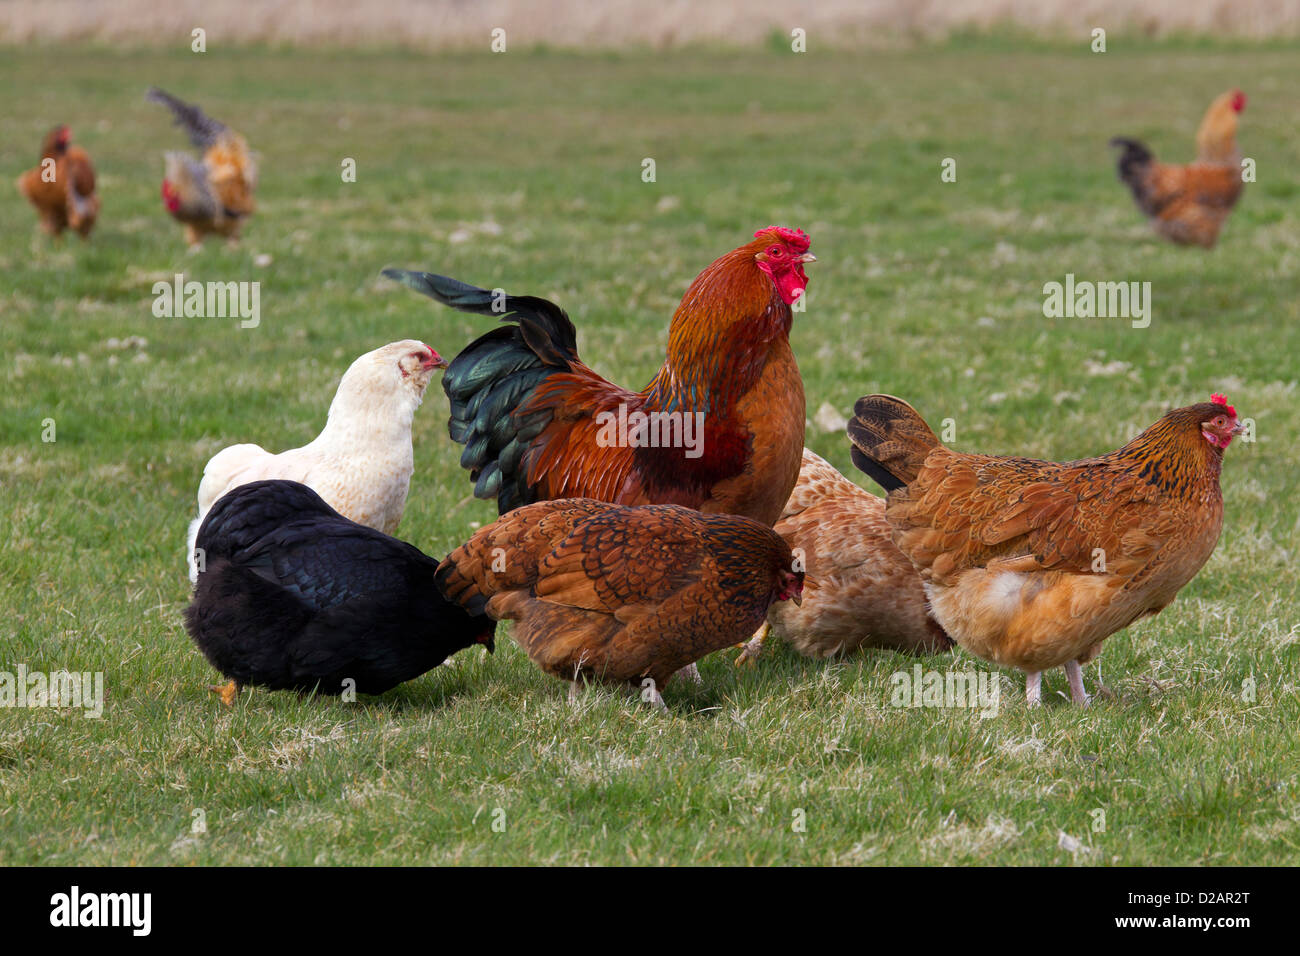 poultry chicken cocks chickens hens rooster blue big large